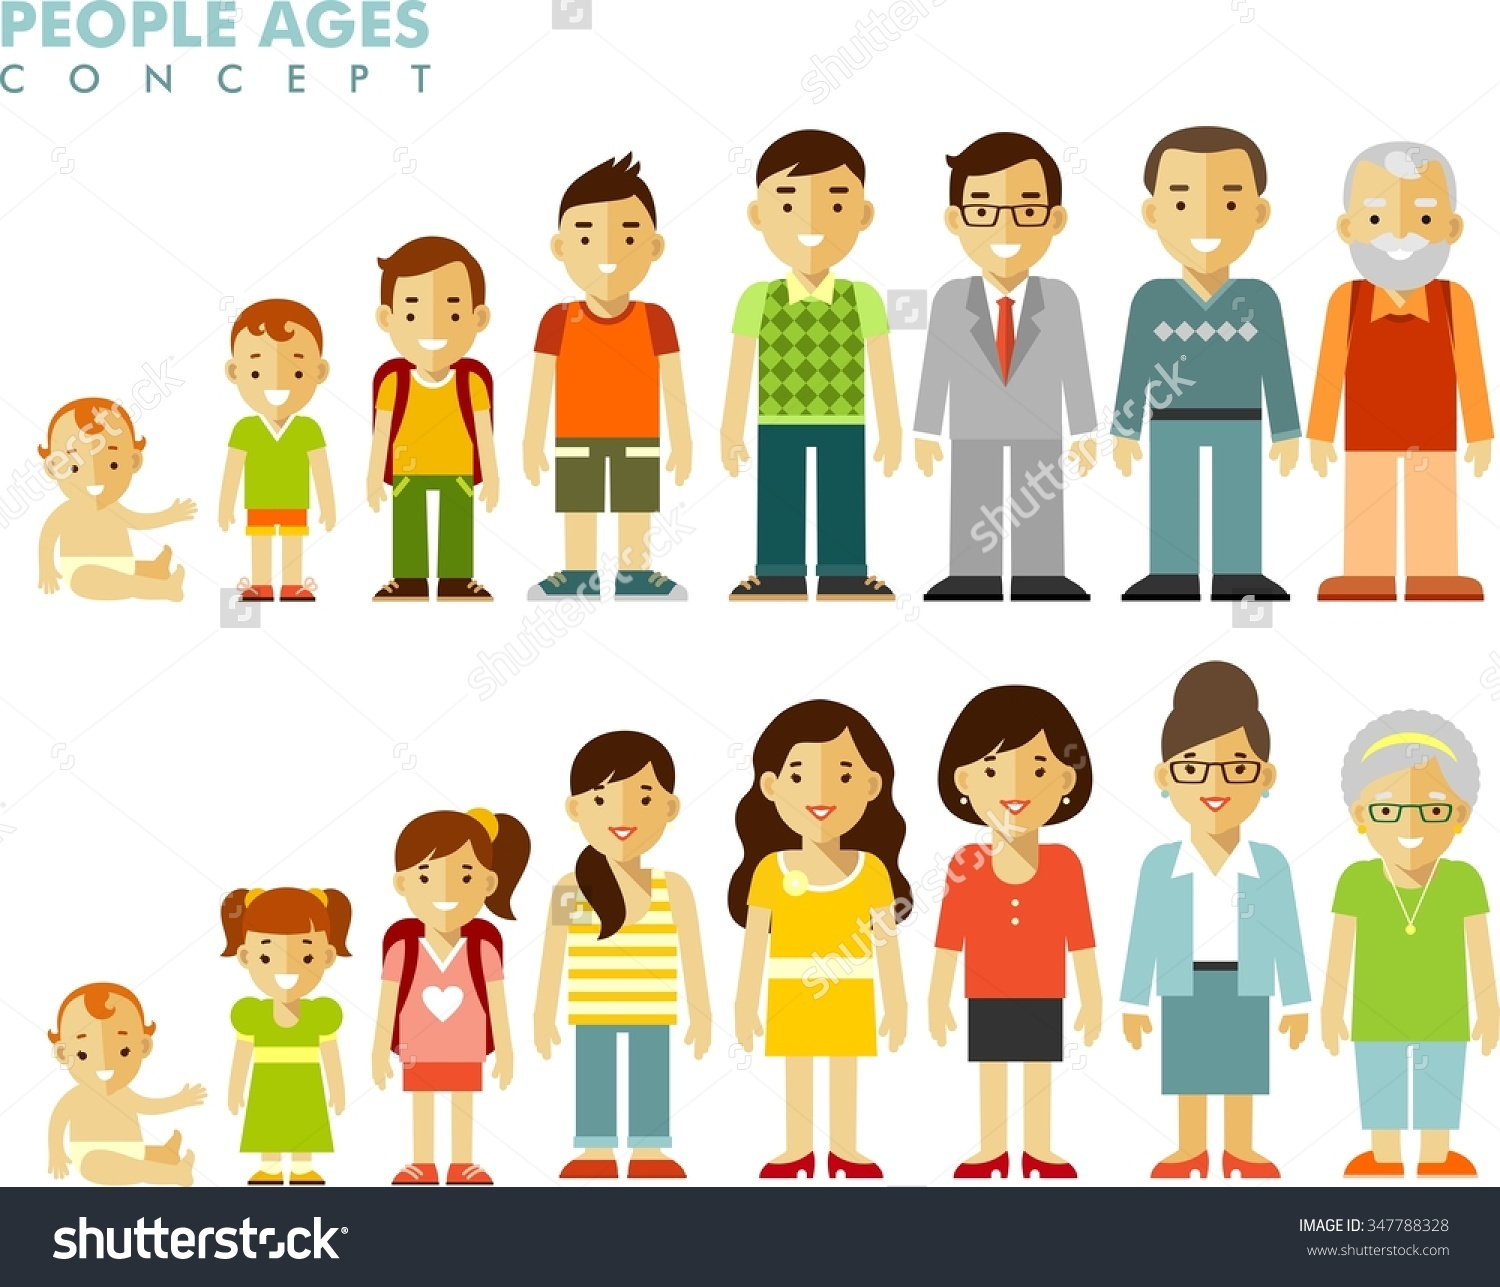 Different ages clipart.